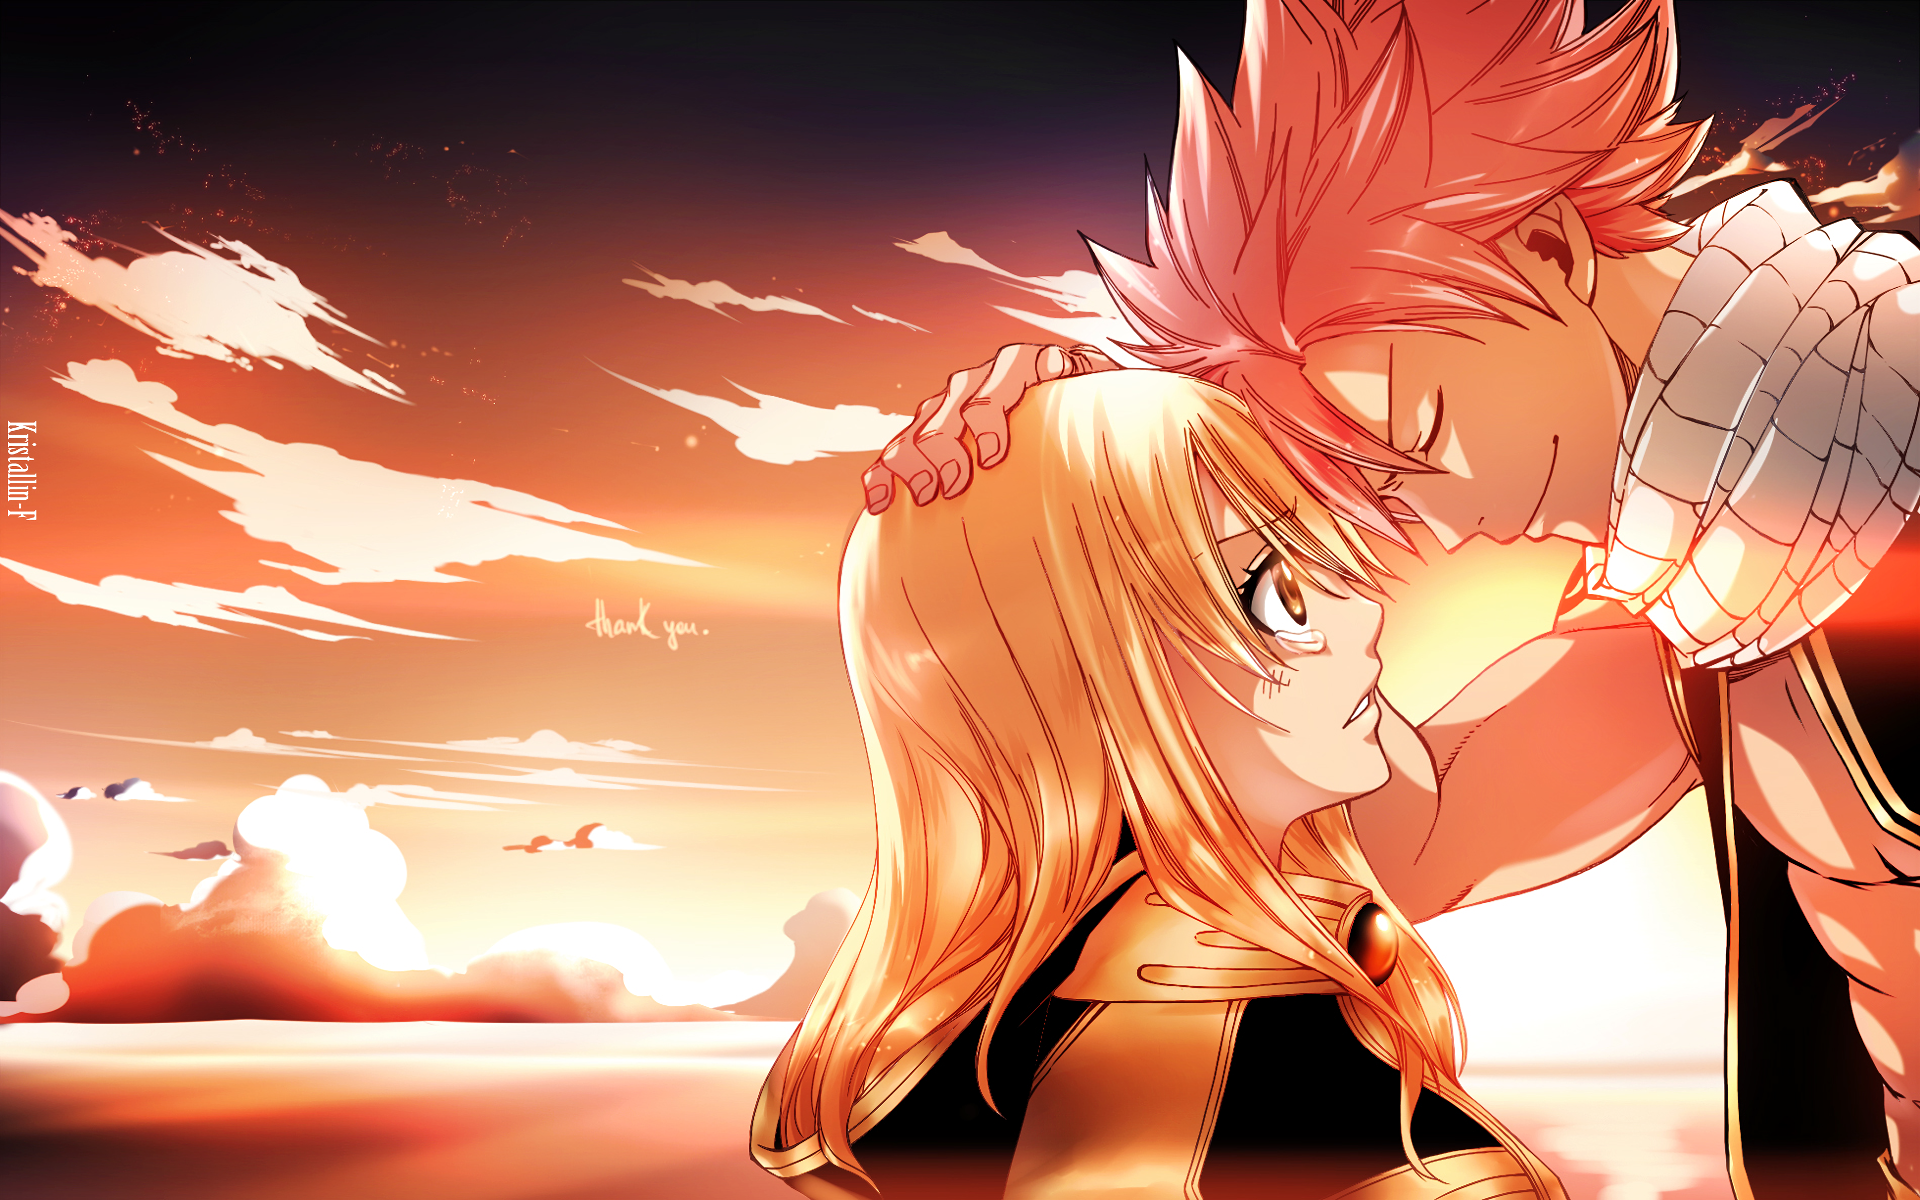 ... Fairy Tail NaLu (Fairy Tail) Lucy Heartfilia Natsu Dragneel Wallpaper